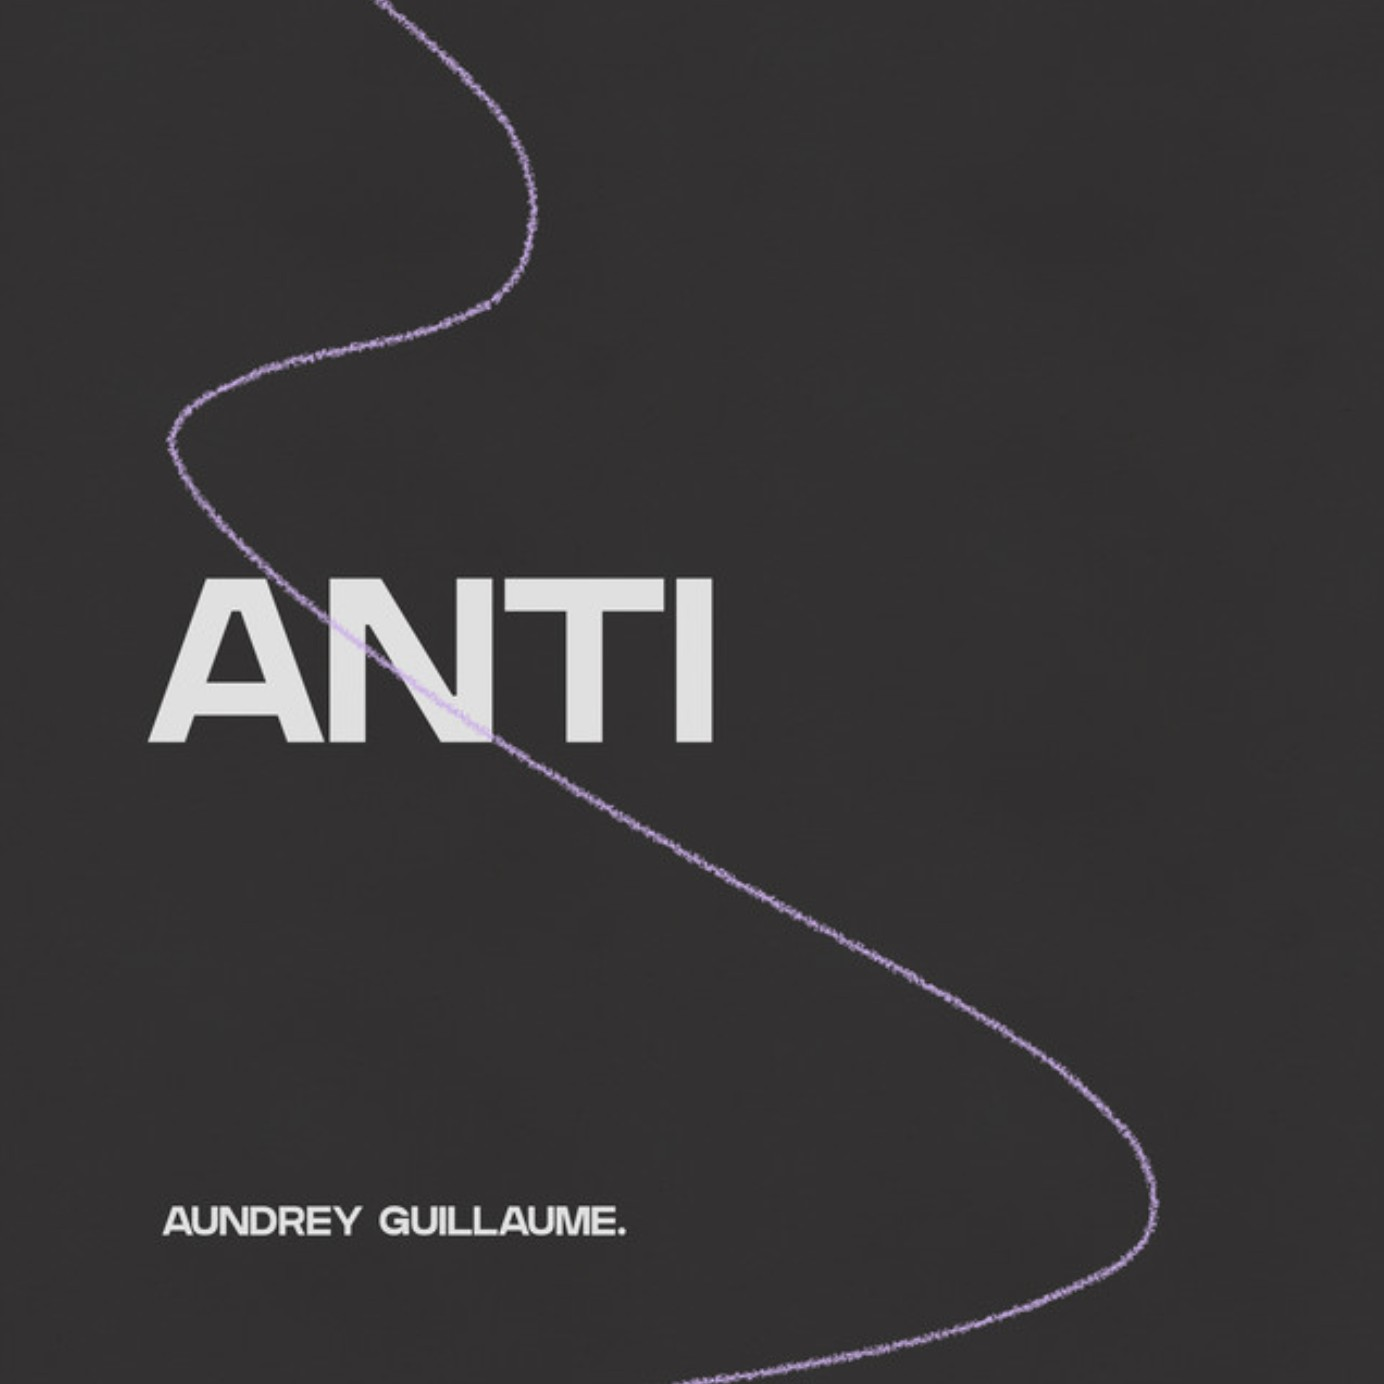 ANTI – [Aundrey Guillaume]